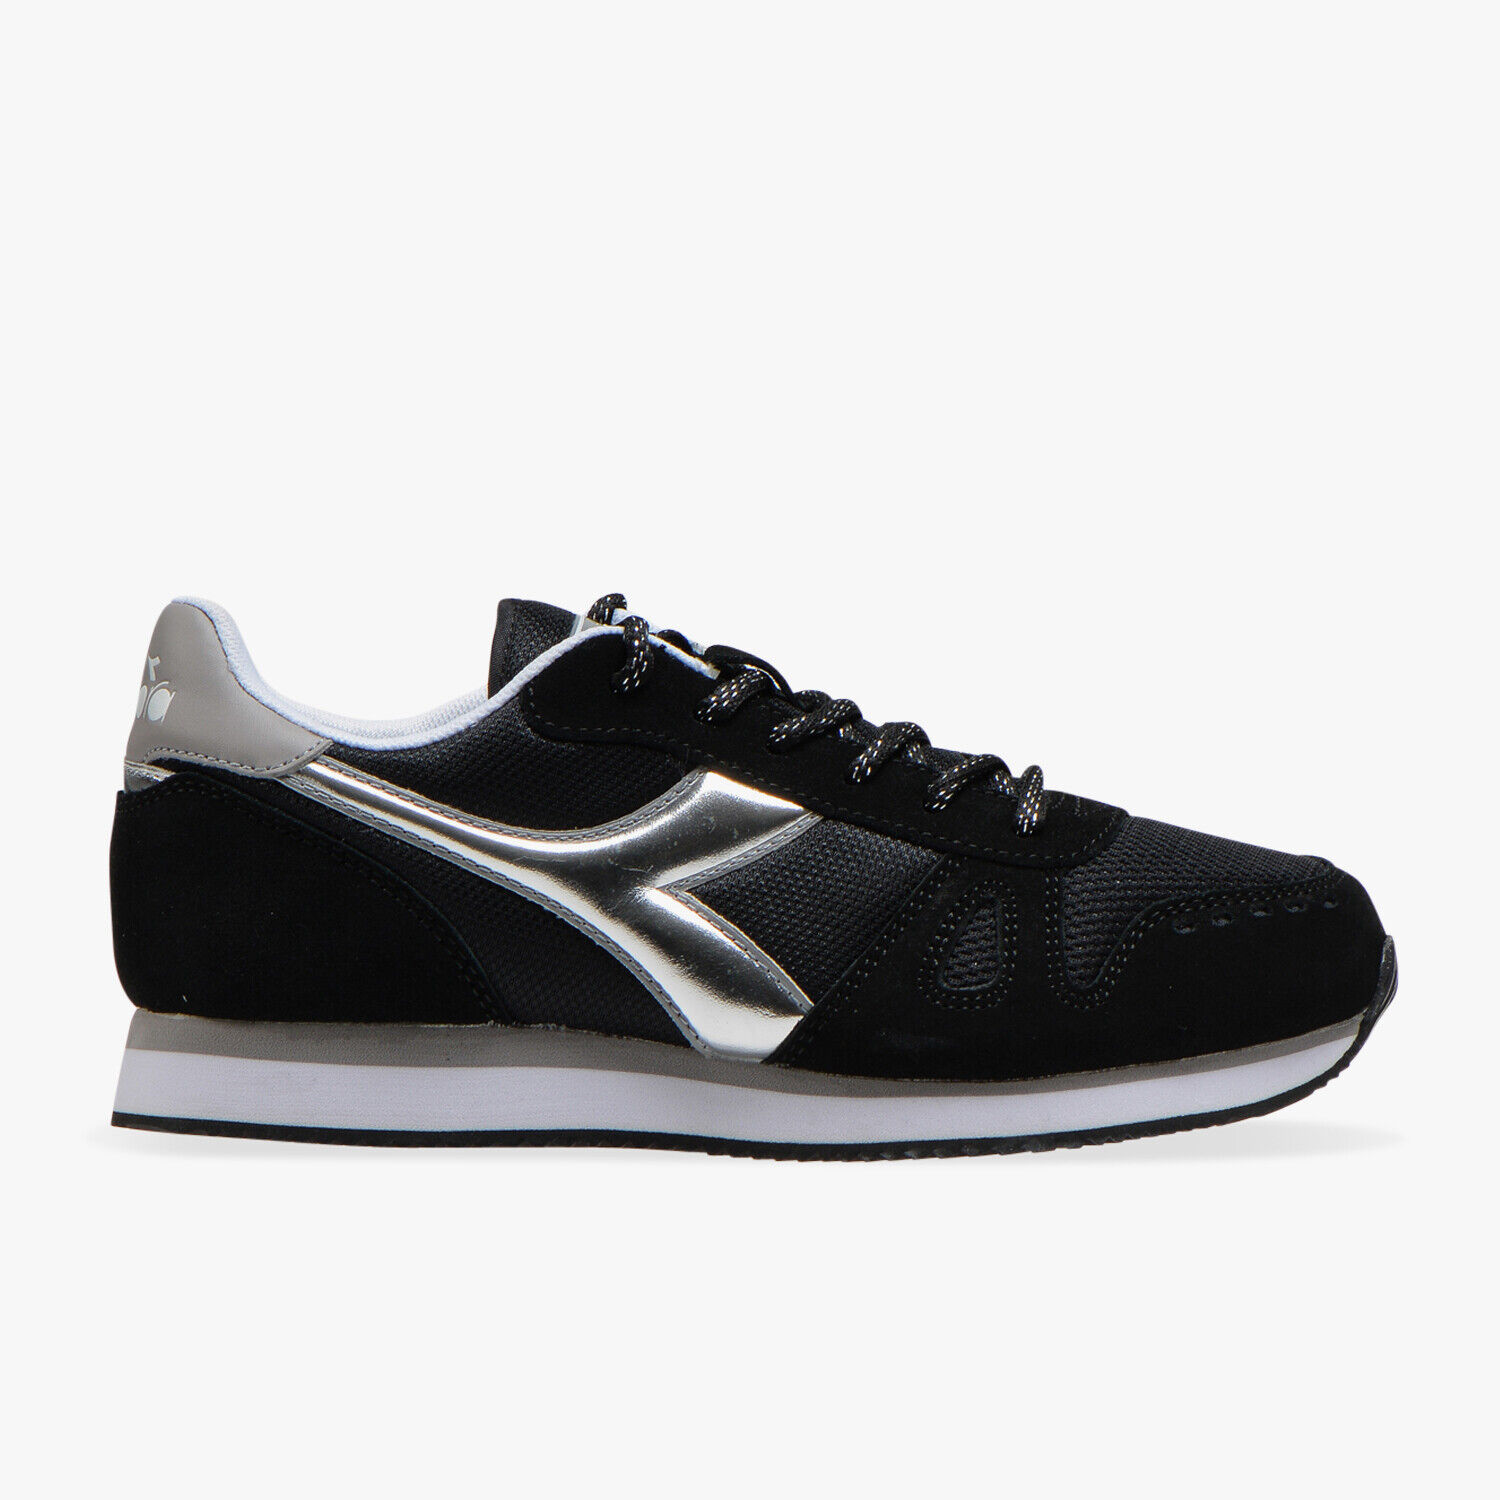 SCARPE DIADORA DONNA SIMPLE RUN WN 101.173746 01 C7565 NERO